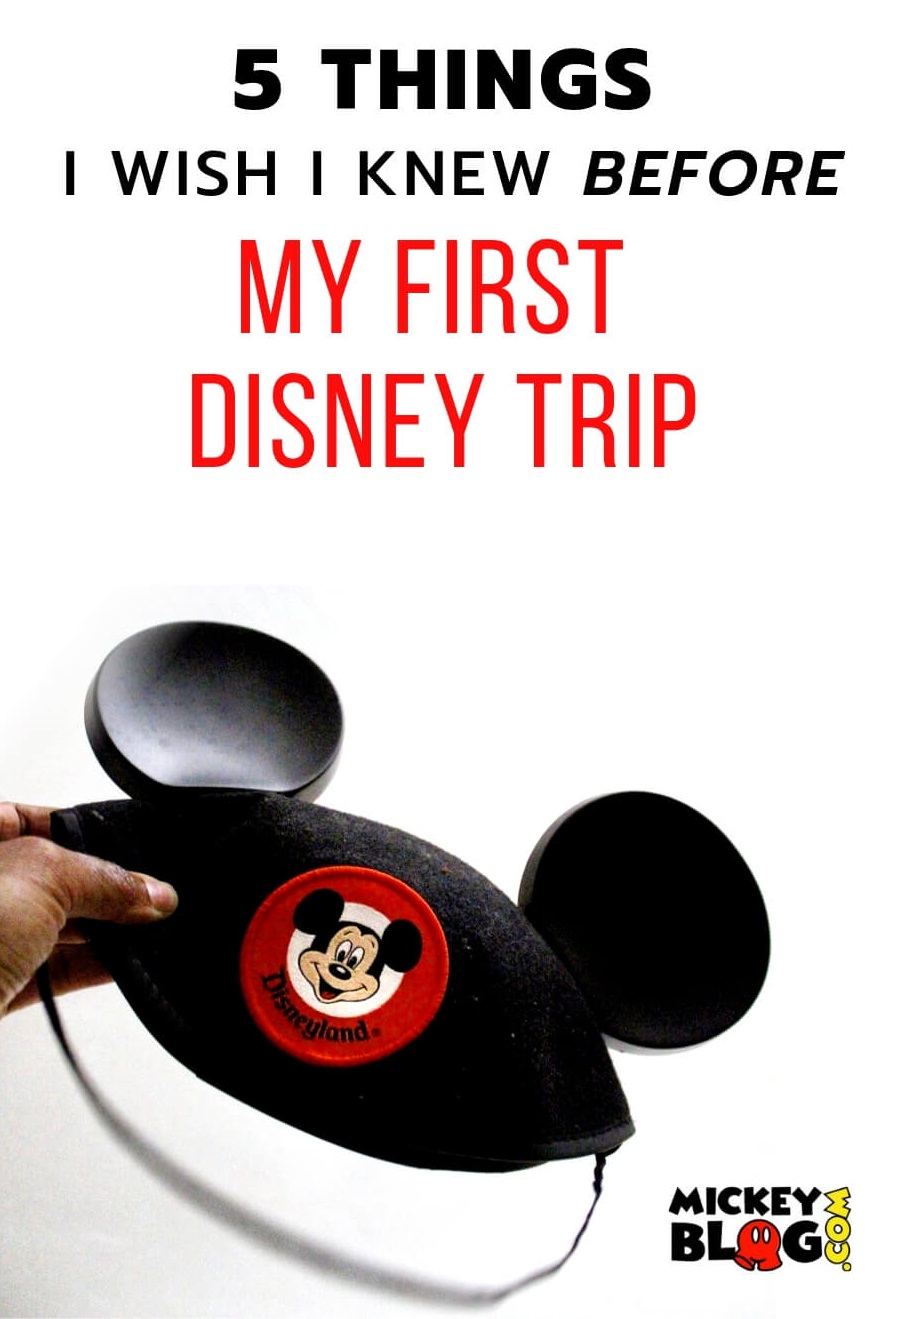 5 things I wish I knew before my first Disney trip